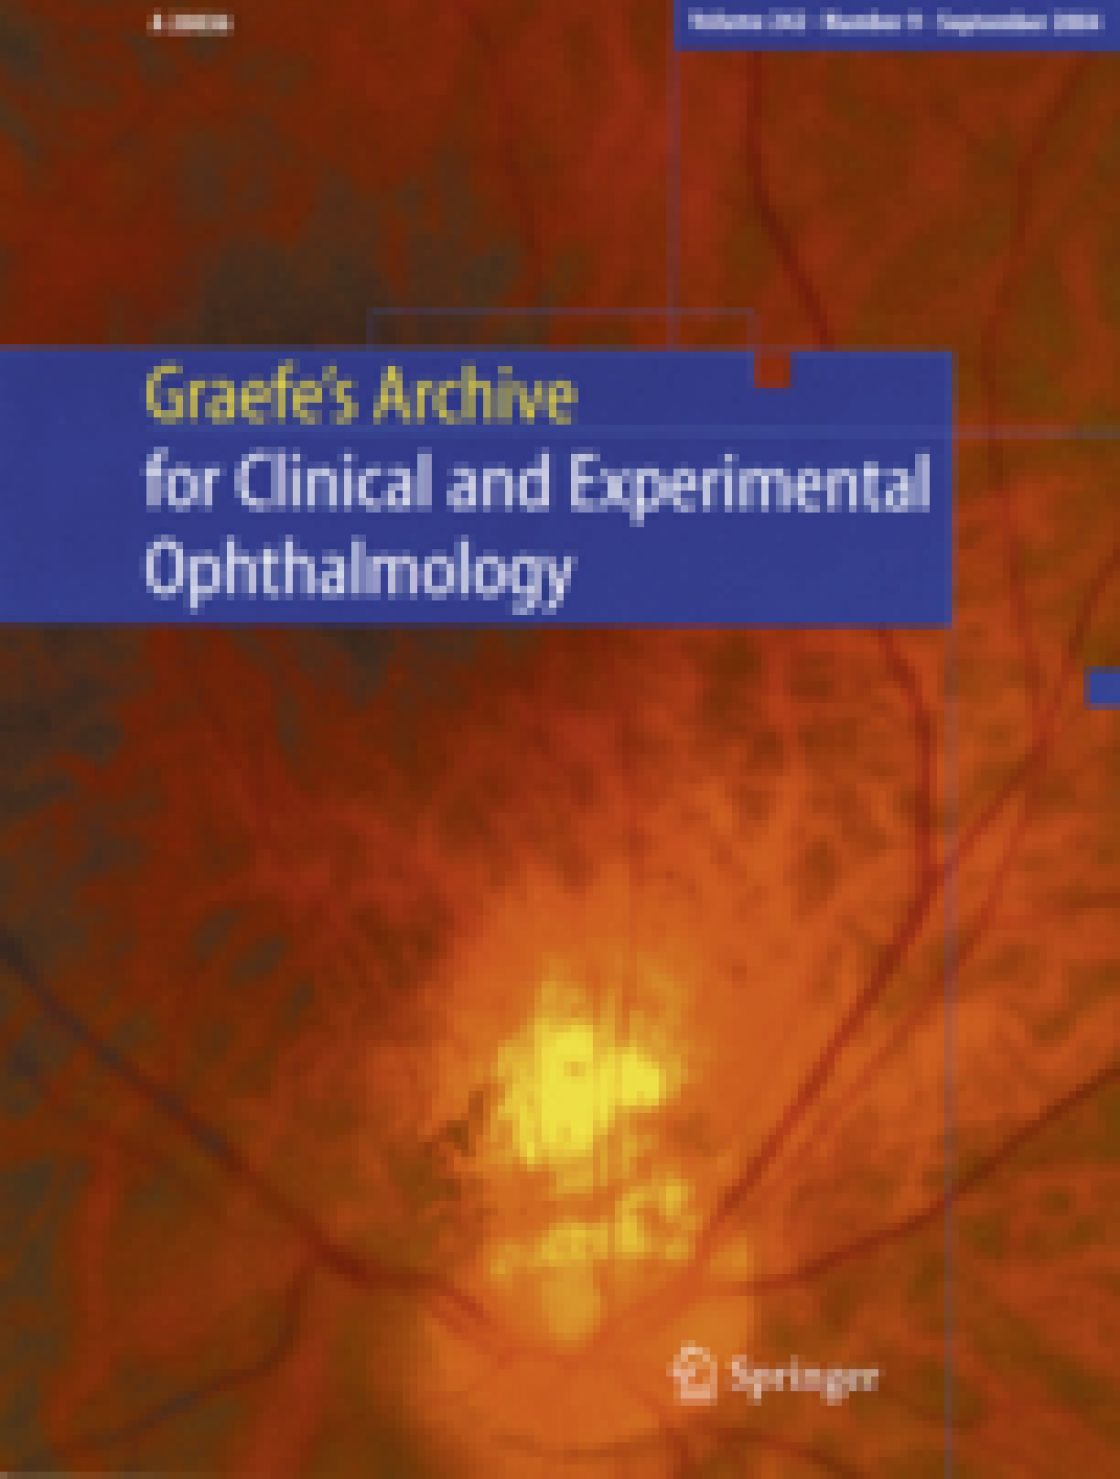 Retinal nerve fiber layer thickness in nonarteritic anterior ischemic optic neuropathy: OCT characterization of the acute and resolving phases